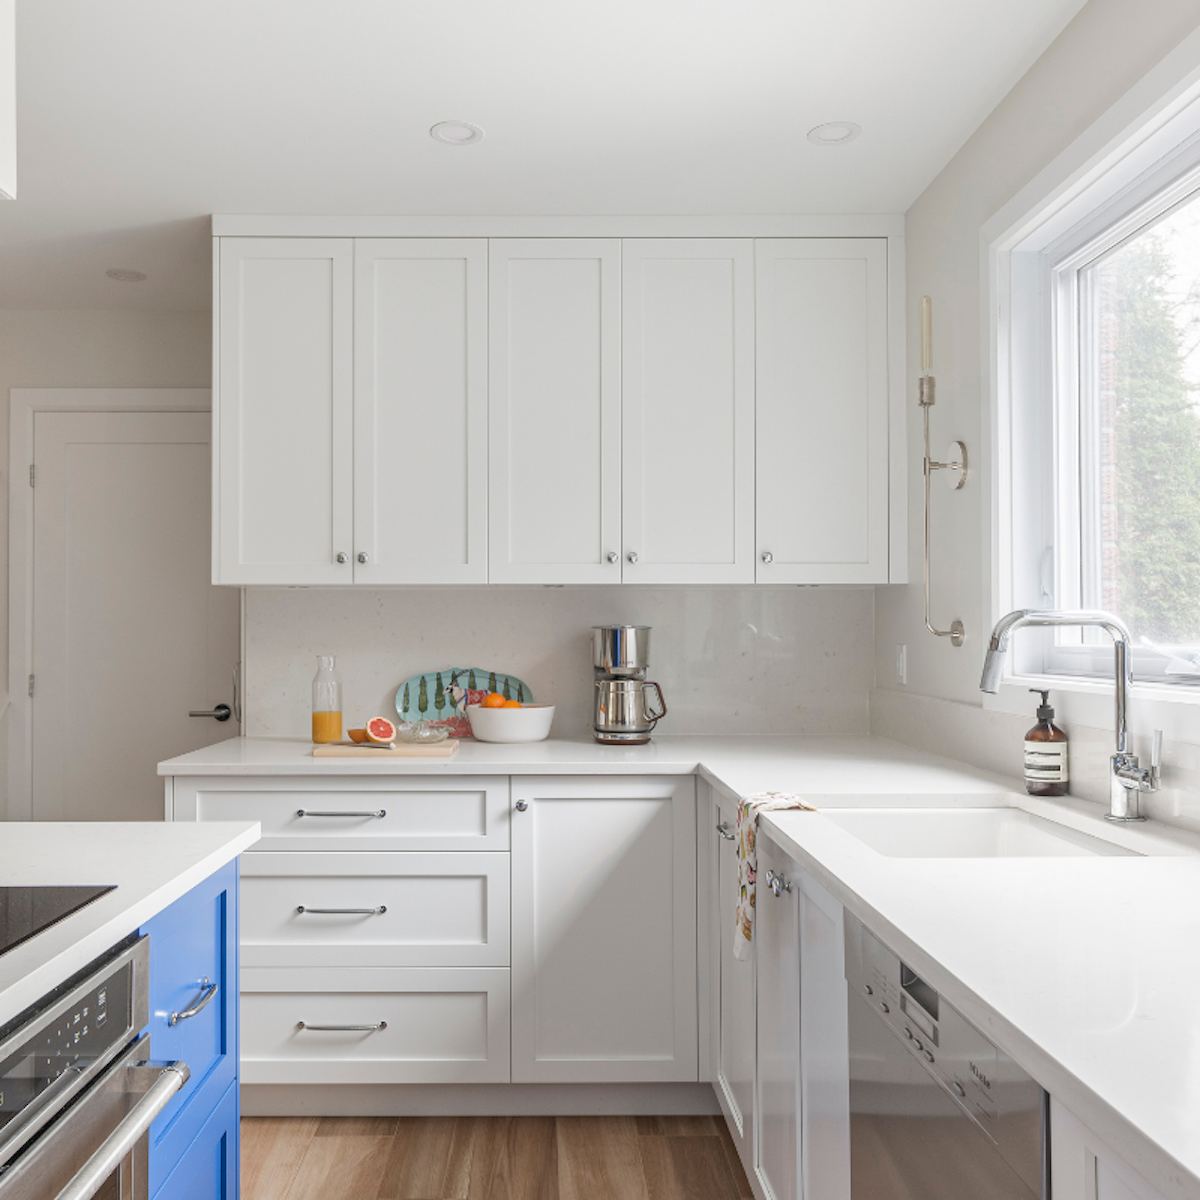 white-kitchen-slab-backsplash-montreal-ca-interior-design-hb-design-inc-3